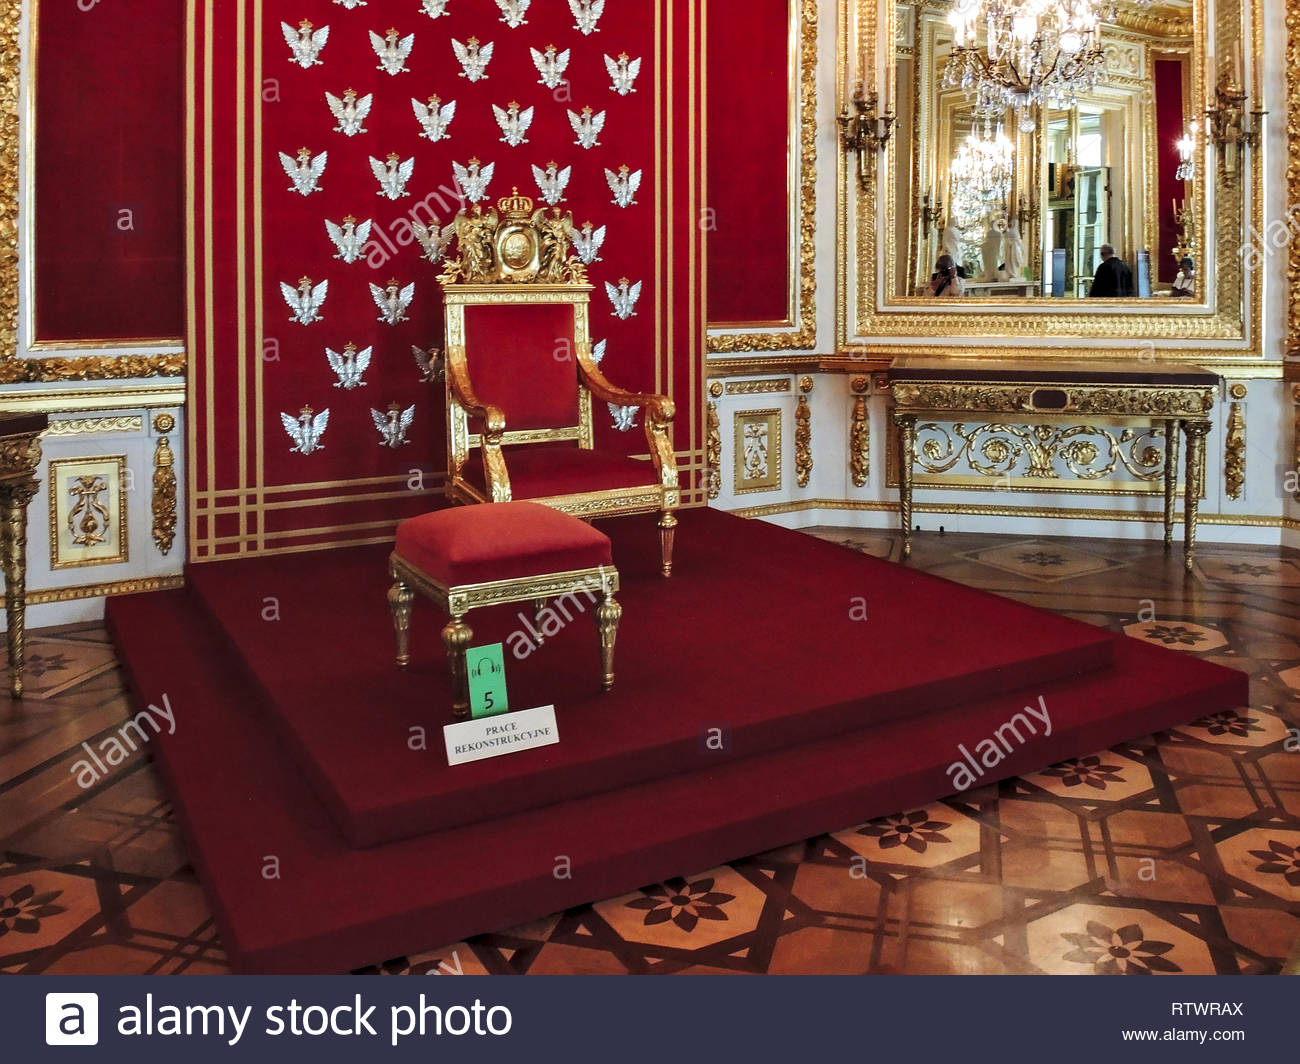 The throne and footstool in the Throne Room of the Royal Castle in Warsaw, Poland, with a mirror reflecting chandeliers - Stock Image